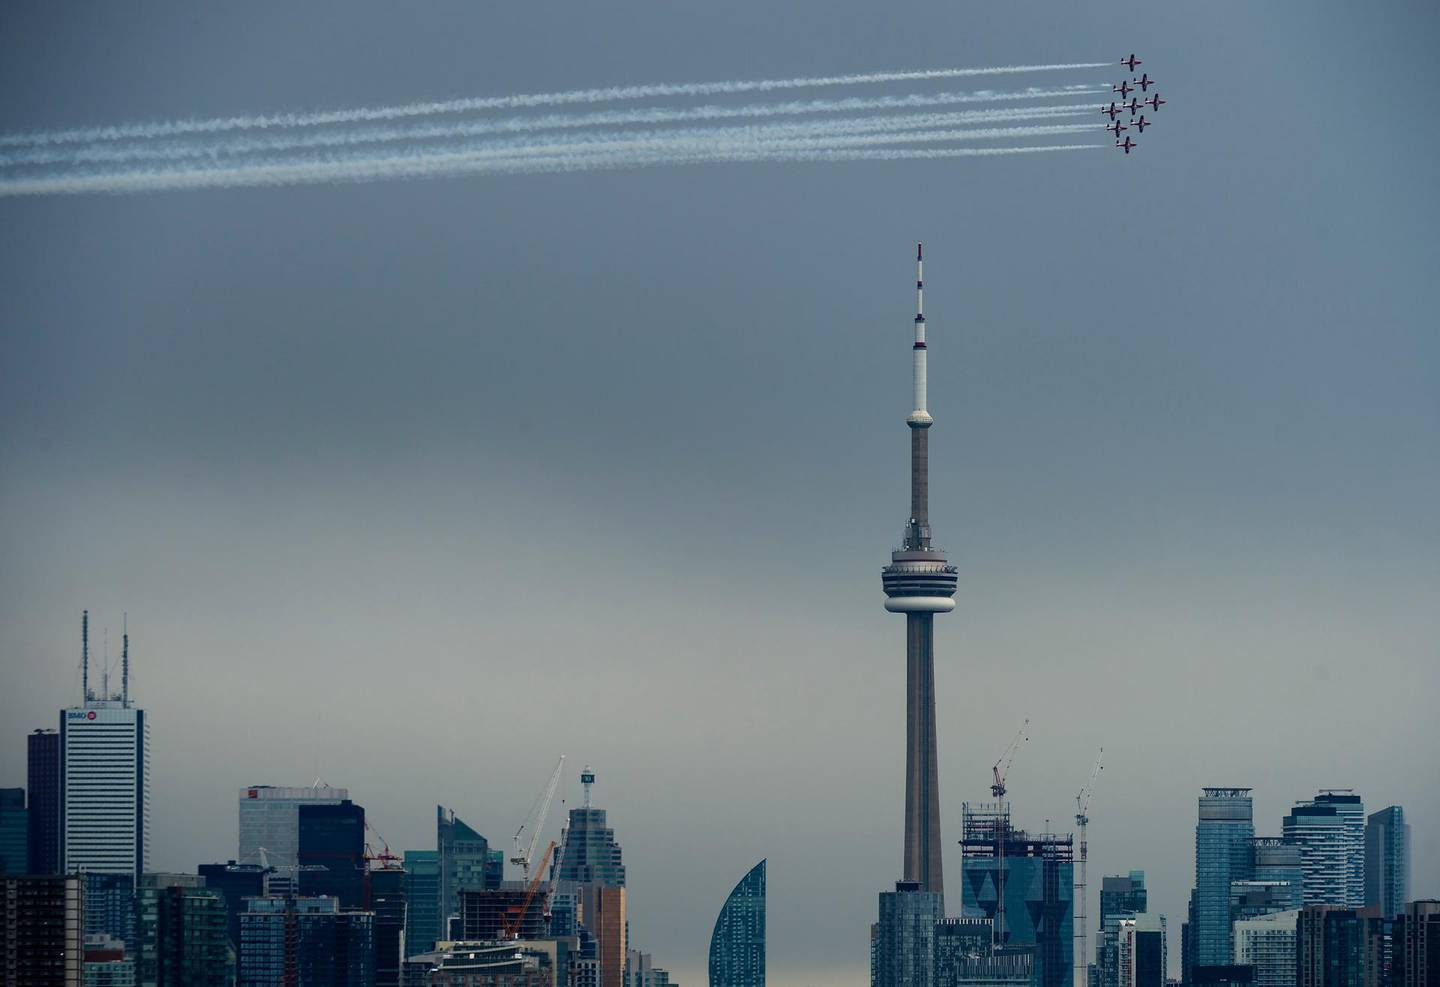 The Canadian Snowbirds circle the CN Tower as part of Operation Inspiration during the COVID-19 pandemic in Toronto, Sunday, May 10, 2020. (Nathan Denette/The Canadian Press via AP)